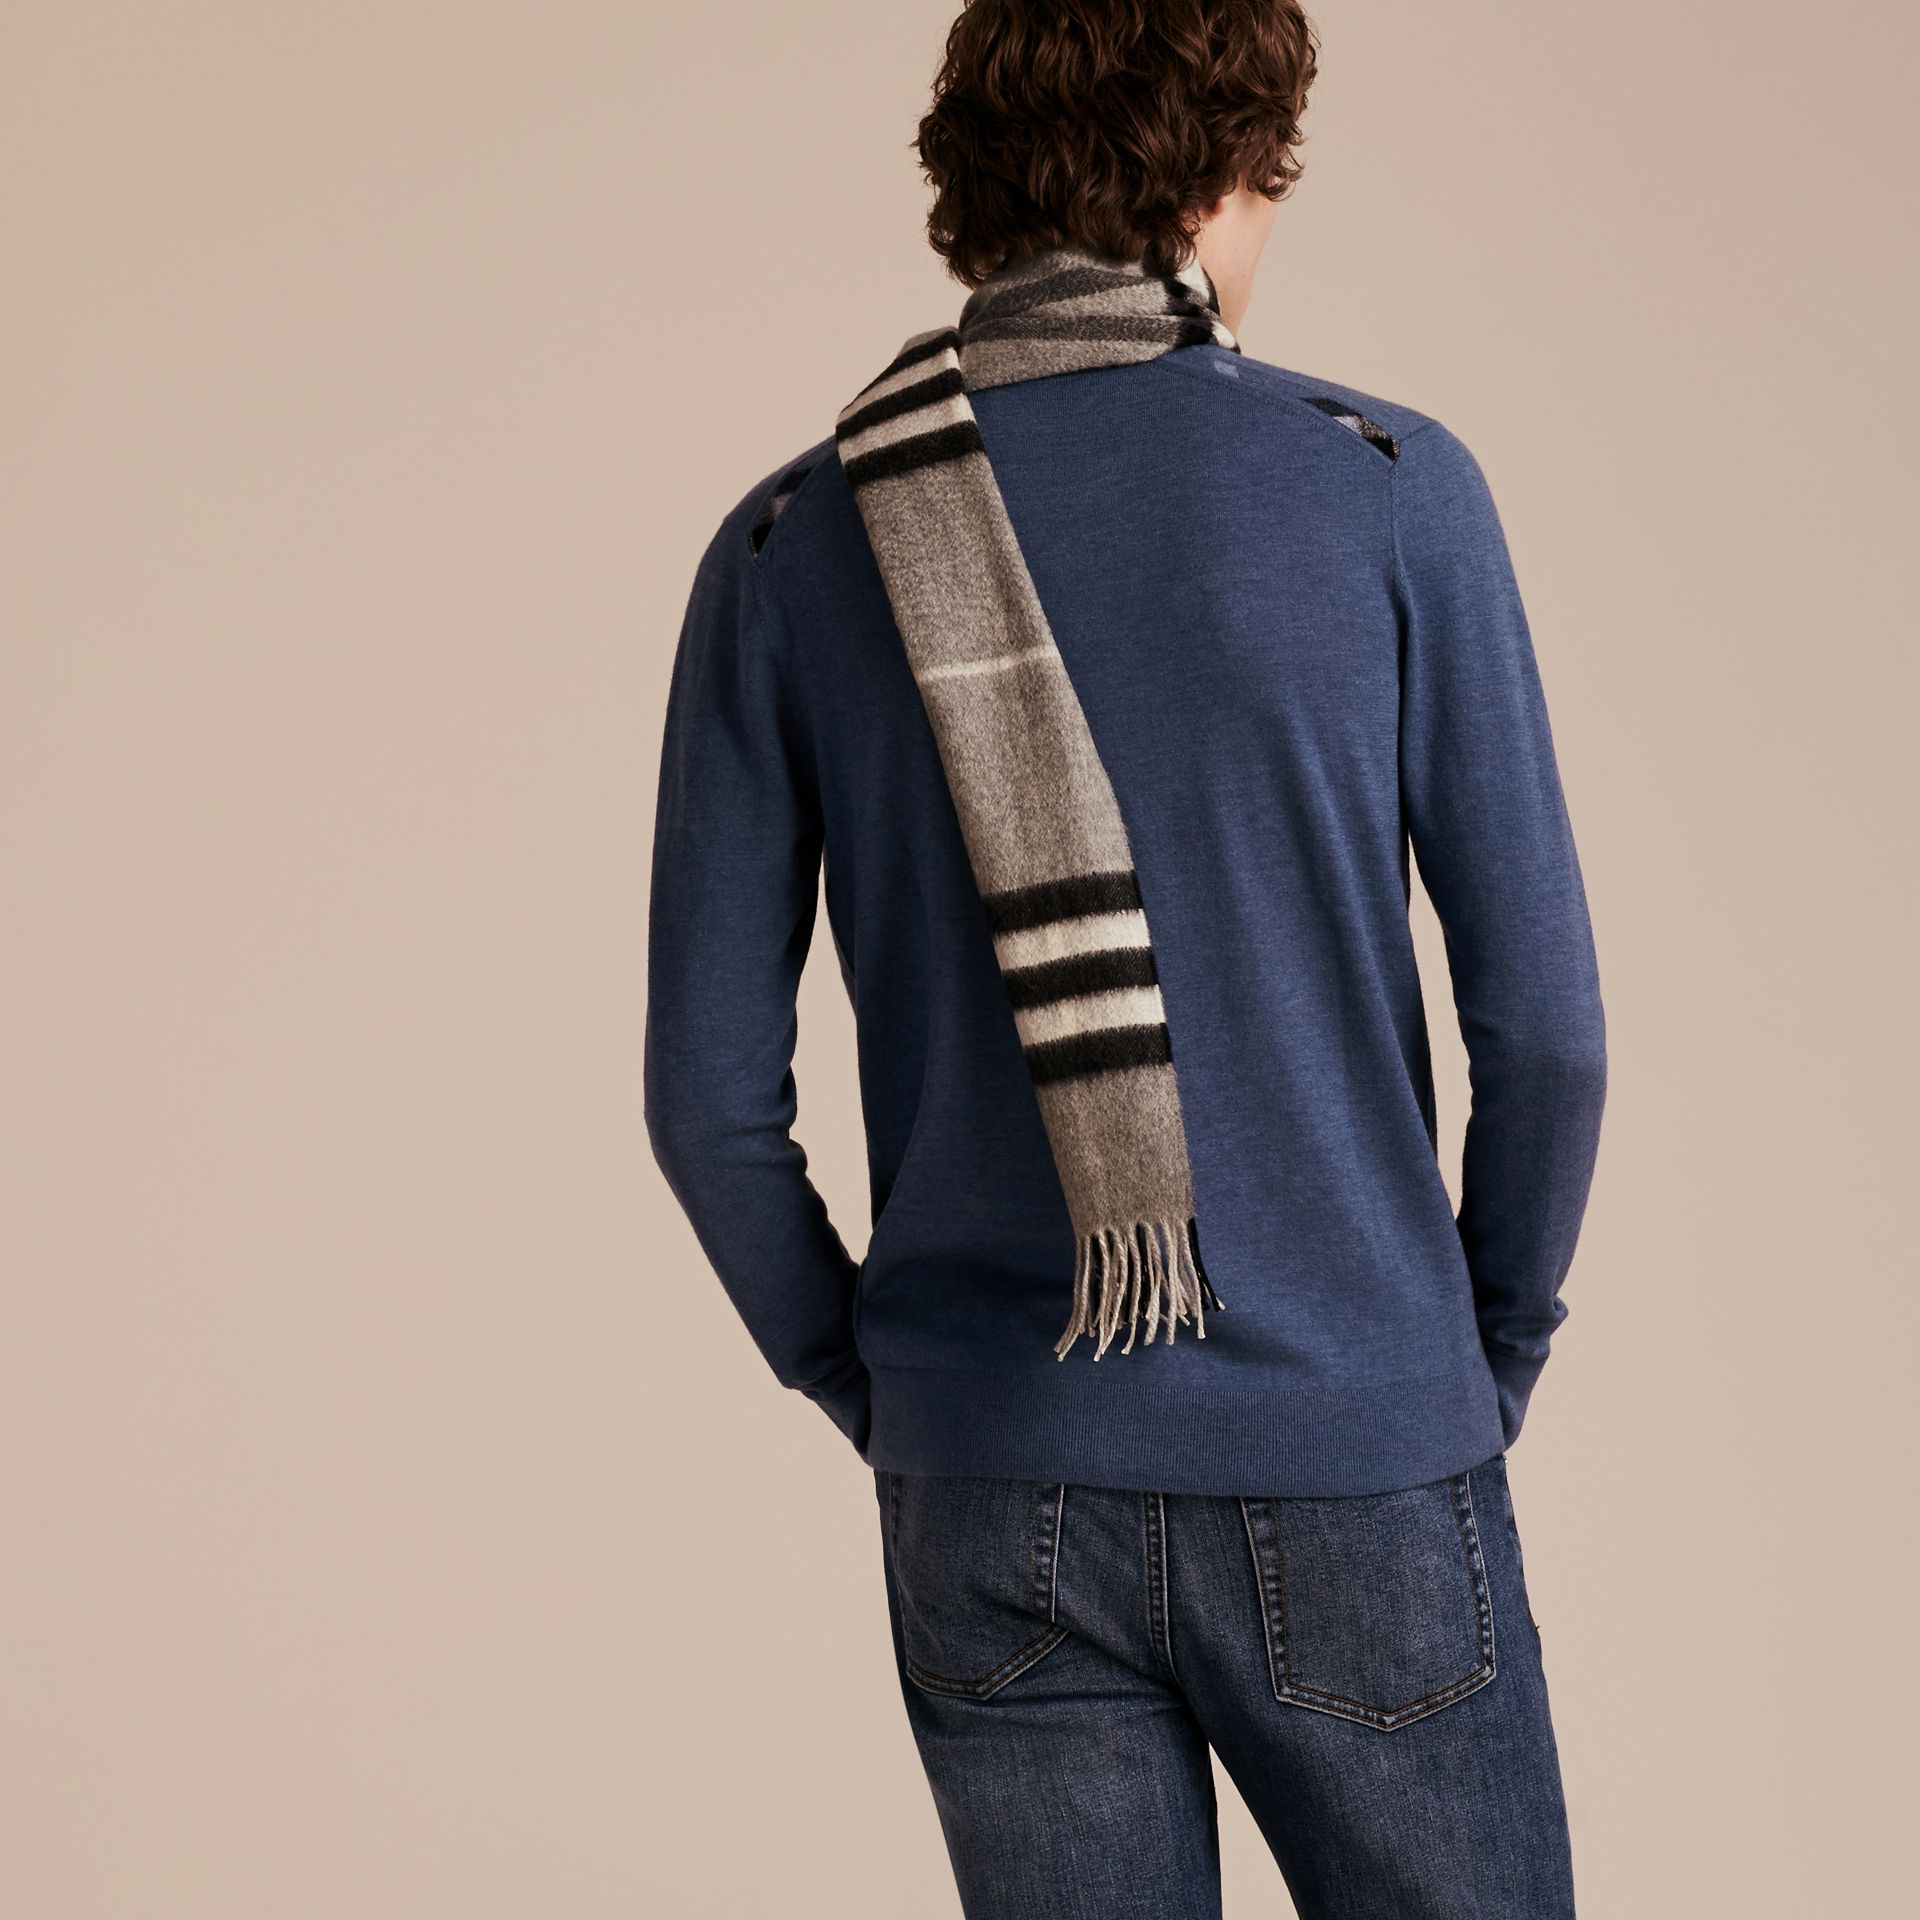 Check Jacquard Detail Cashmere Sweater in Dusty Blue - Men | Burberry Canada - gallery image 3